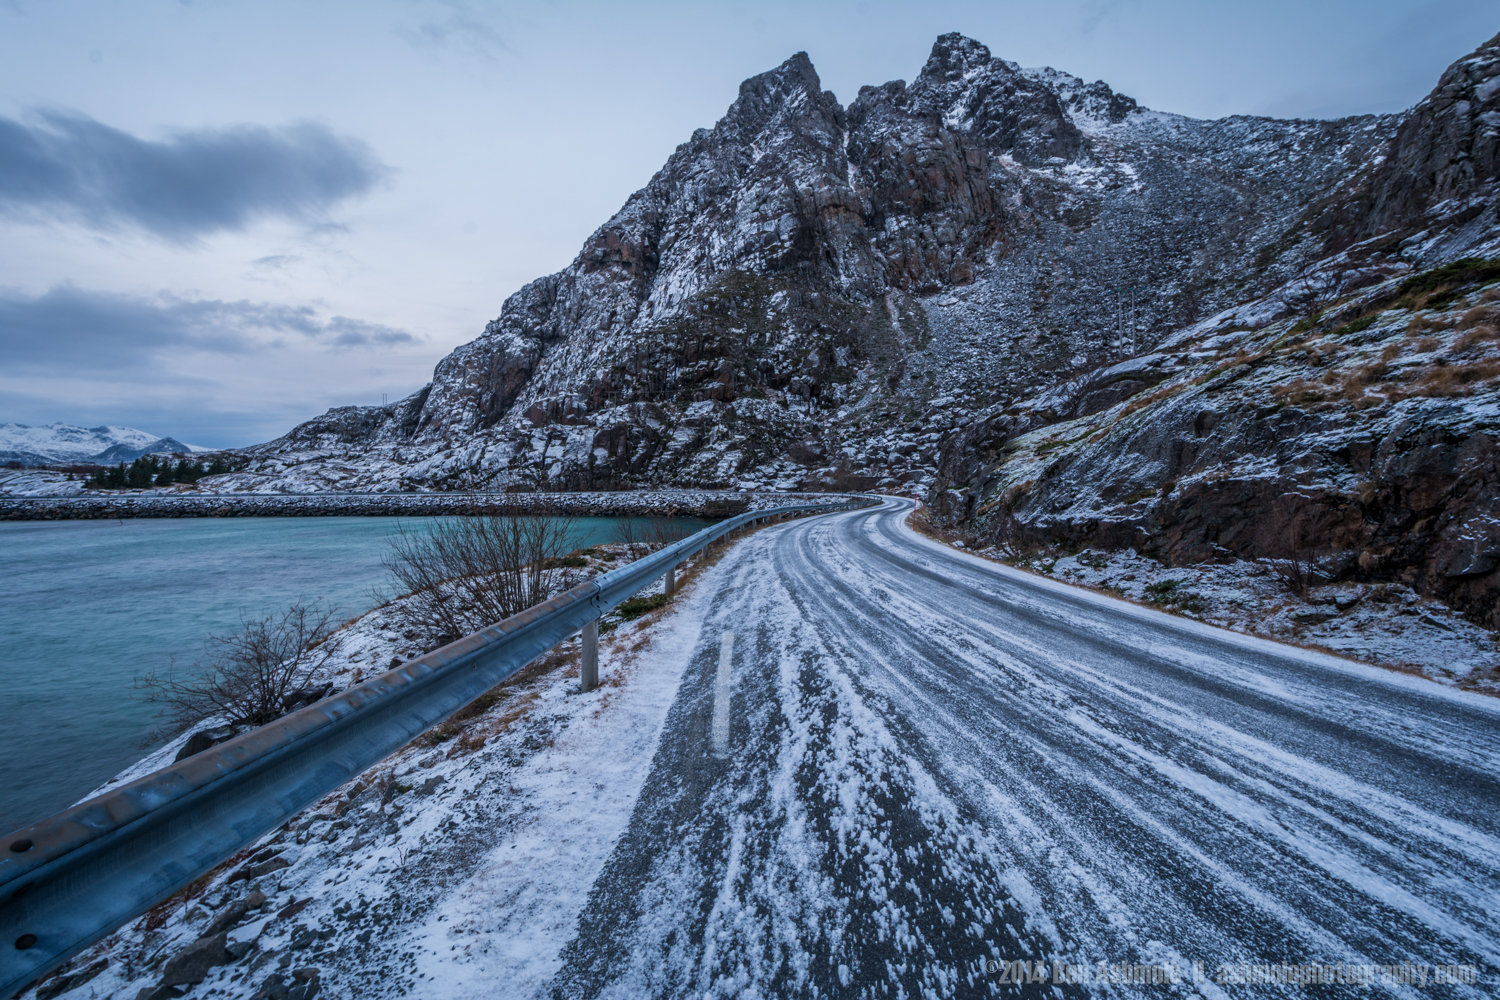 Icy Road, Lofoten slands, Norway